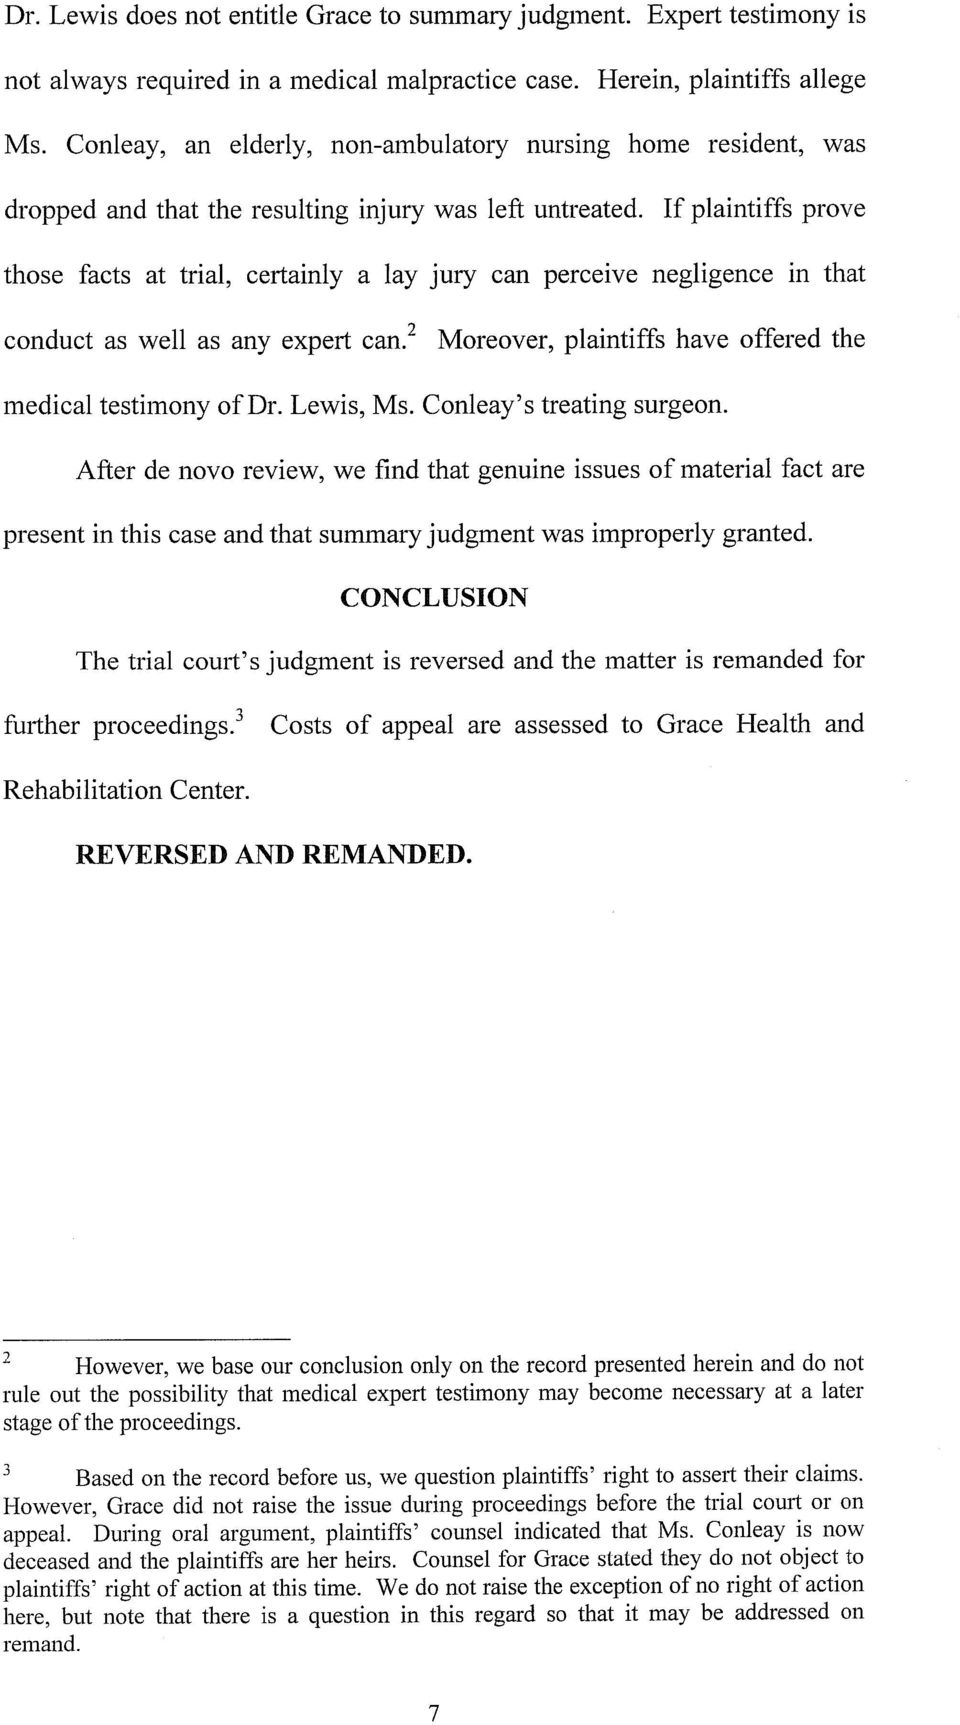 Moreover plaintiffs have offered the medical testimony ofdr Lewis Ms Conleay s treating surgeon After de novo review we find that genuine issues of material fact are present in this case and that